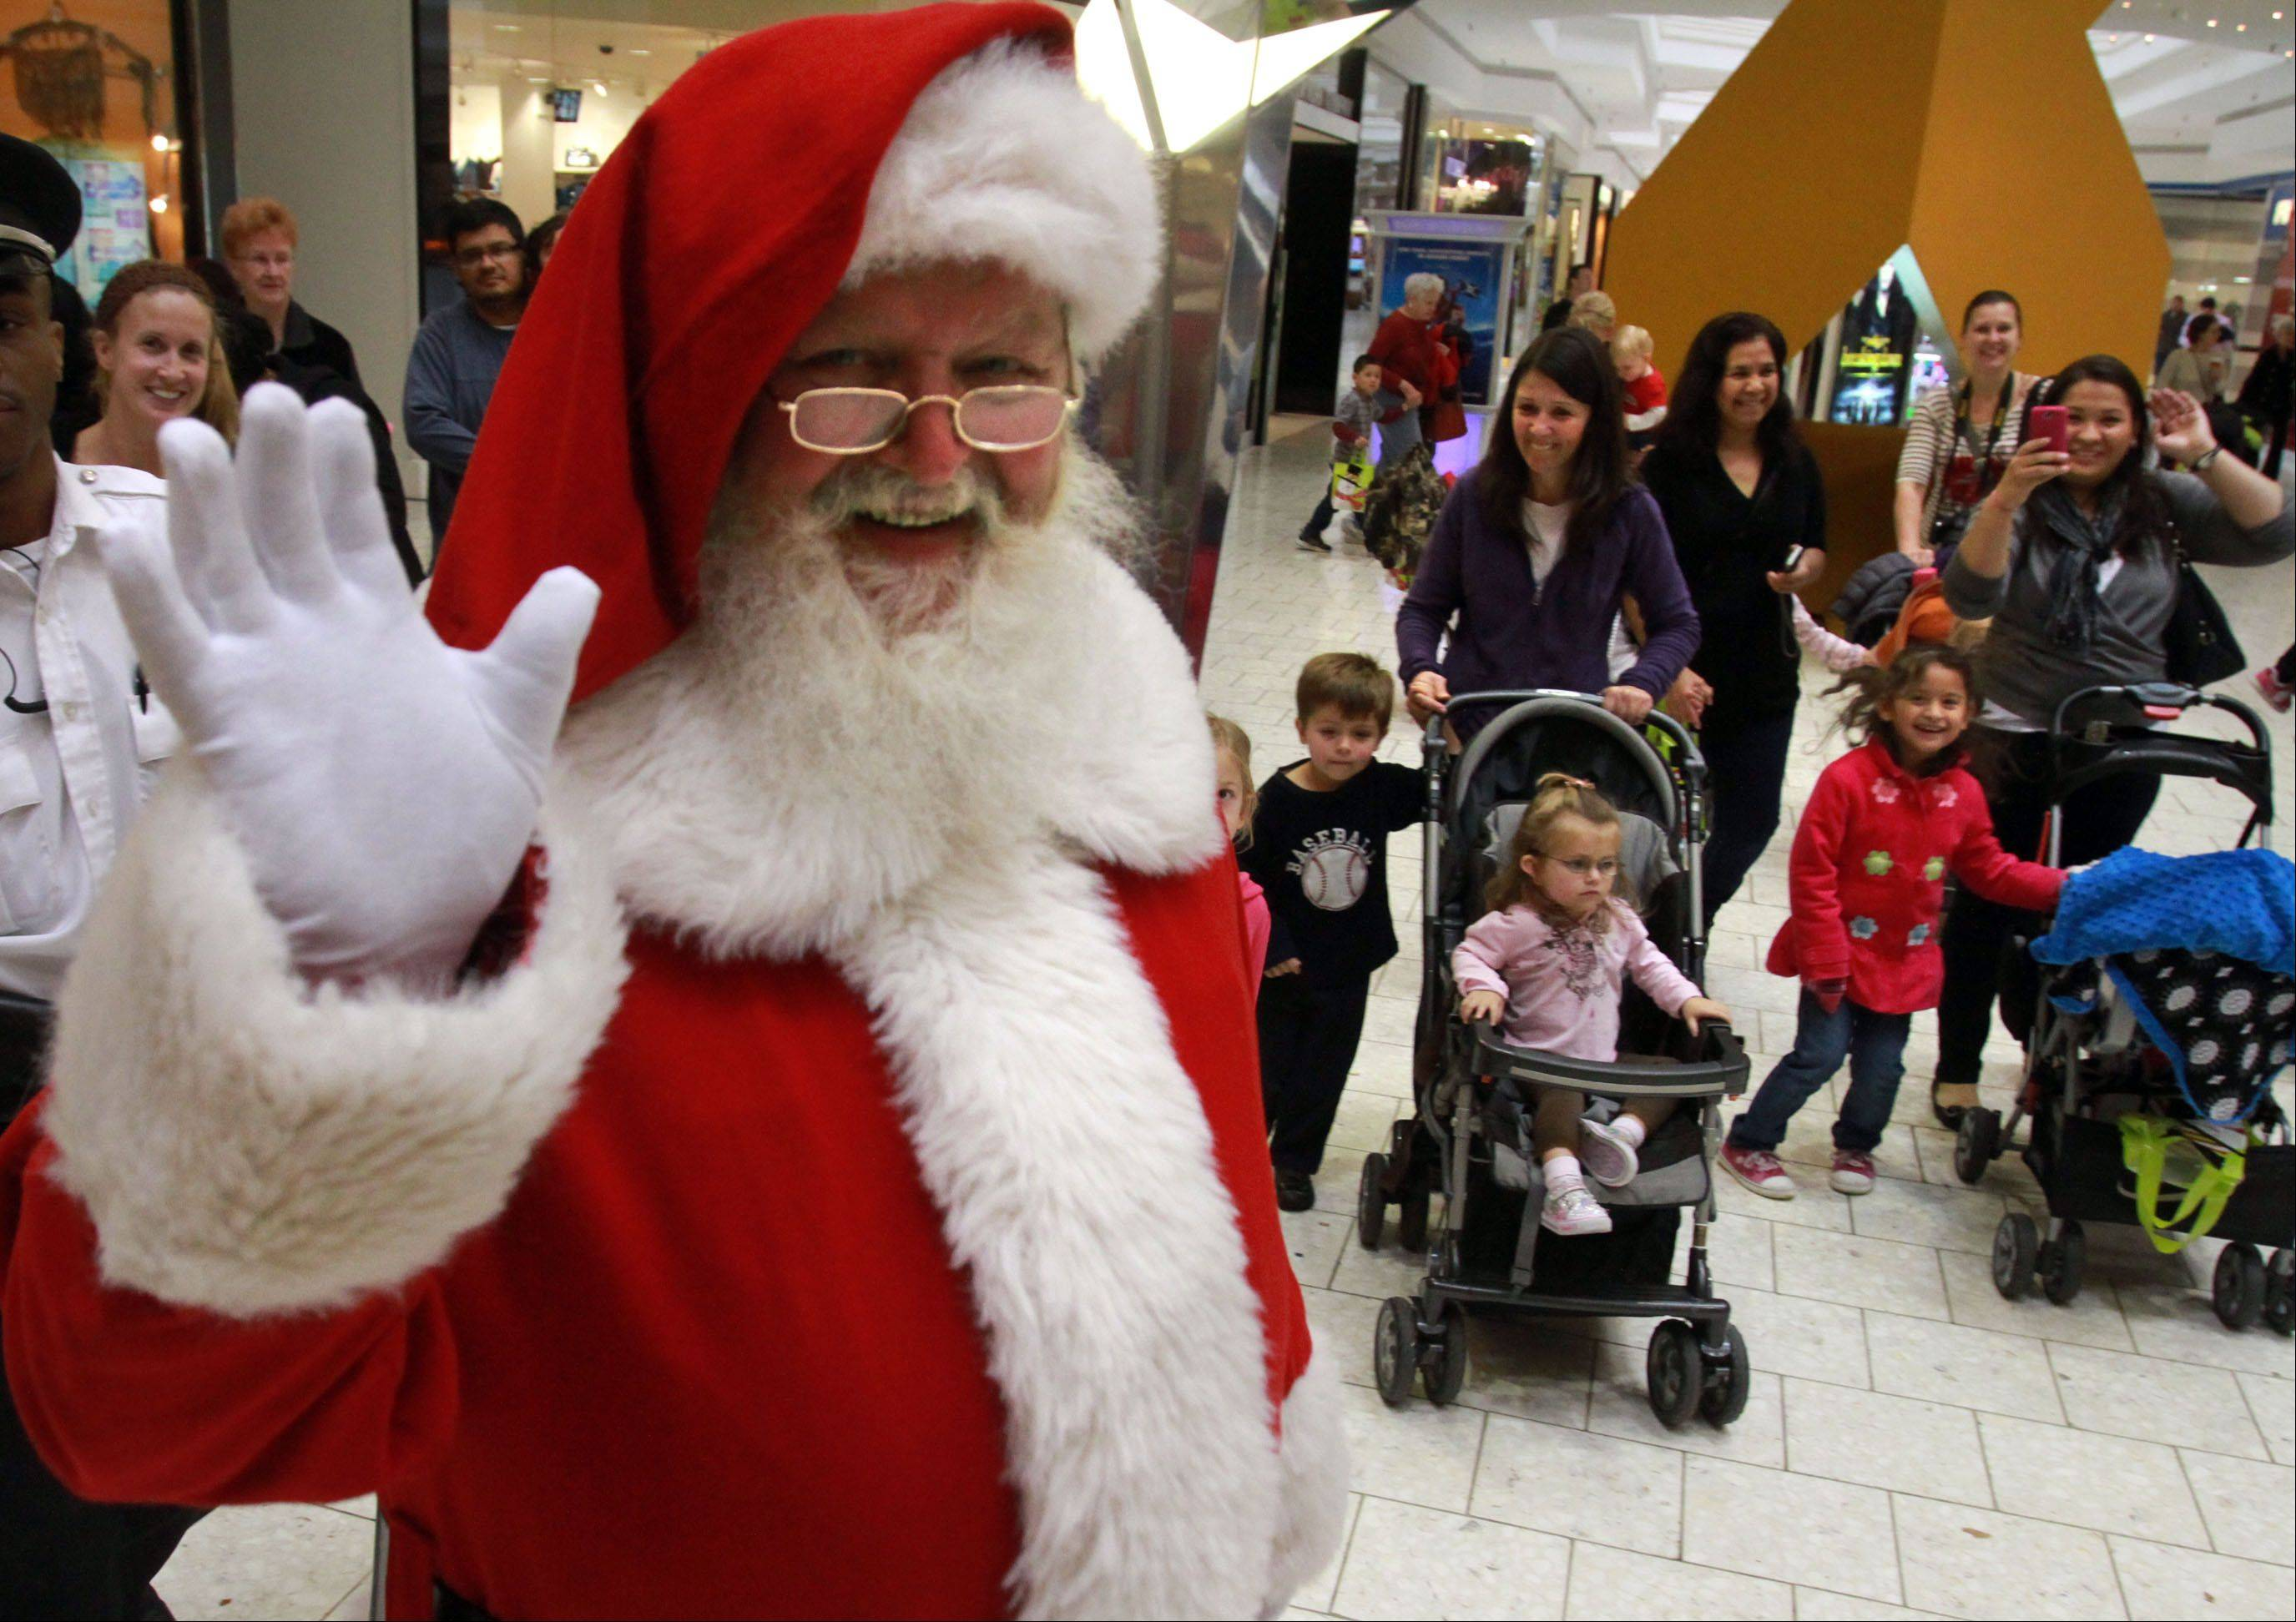 Santa Claus leads a parade up and down the wings of Woodfield Mall in Schaumburg after his arrival Thursday to kick off the holiday shopping season.